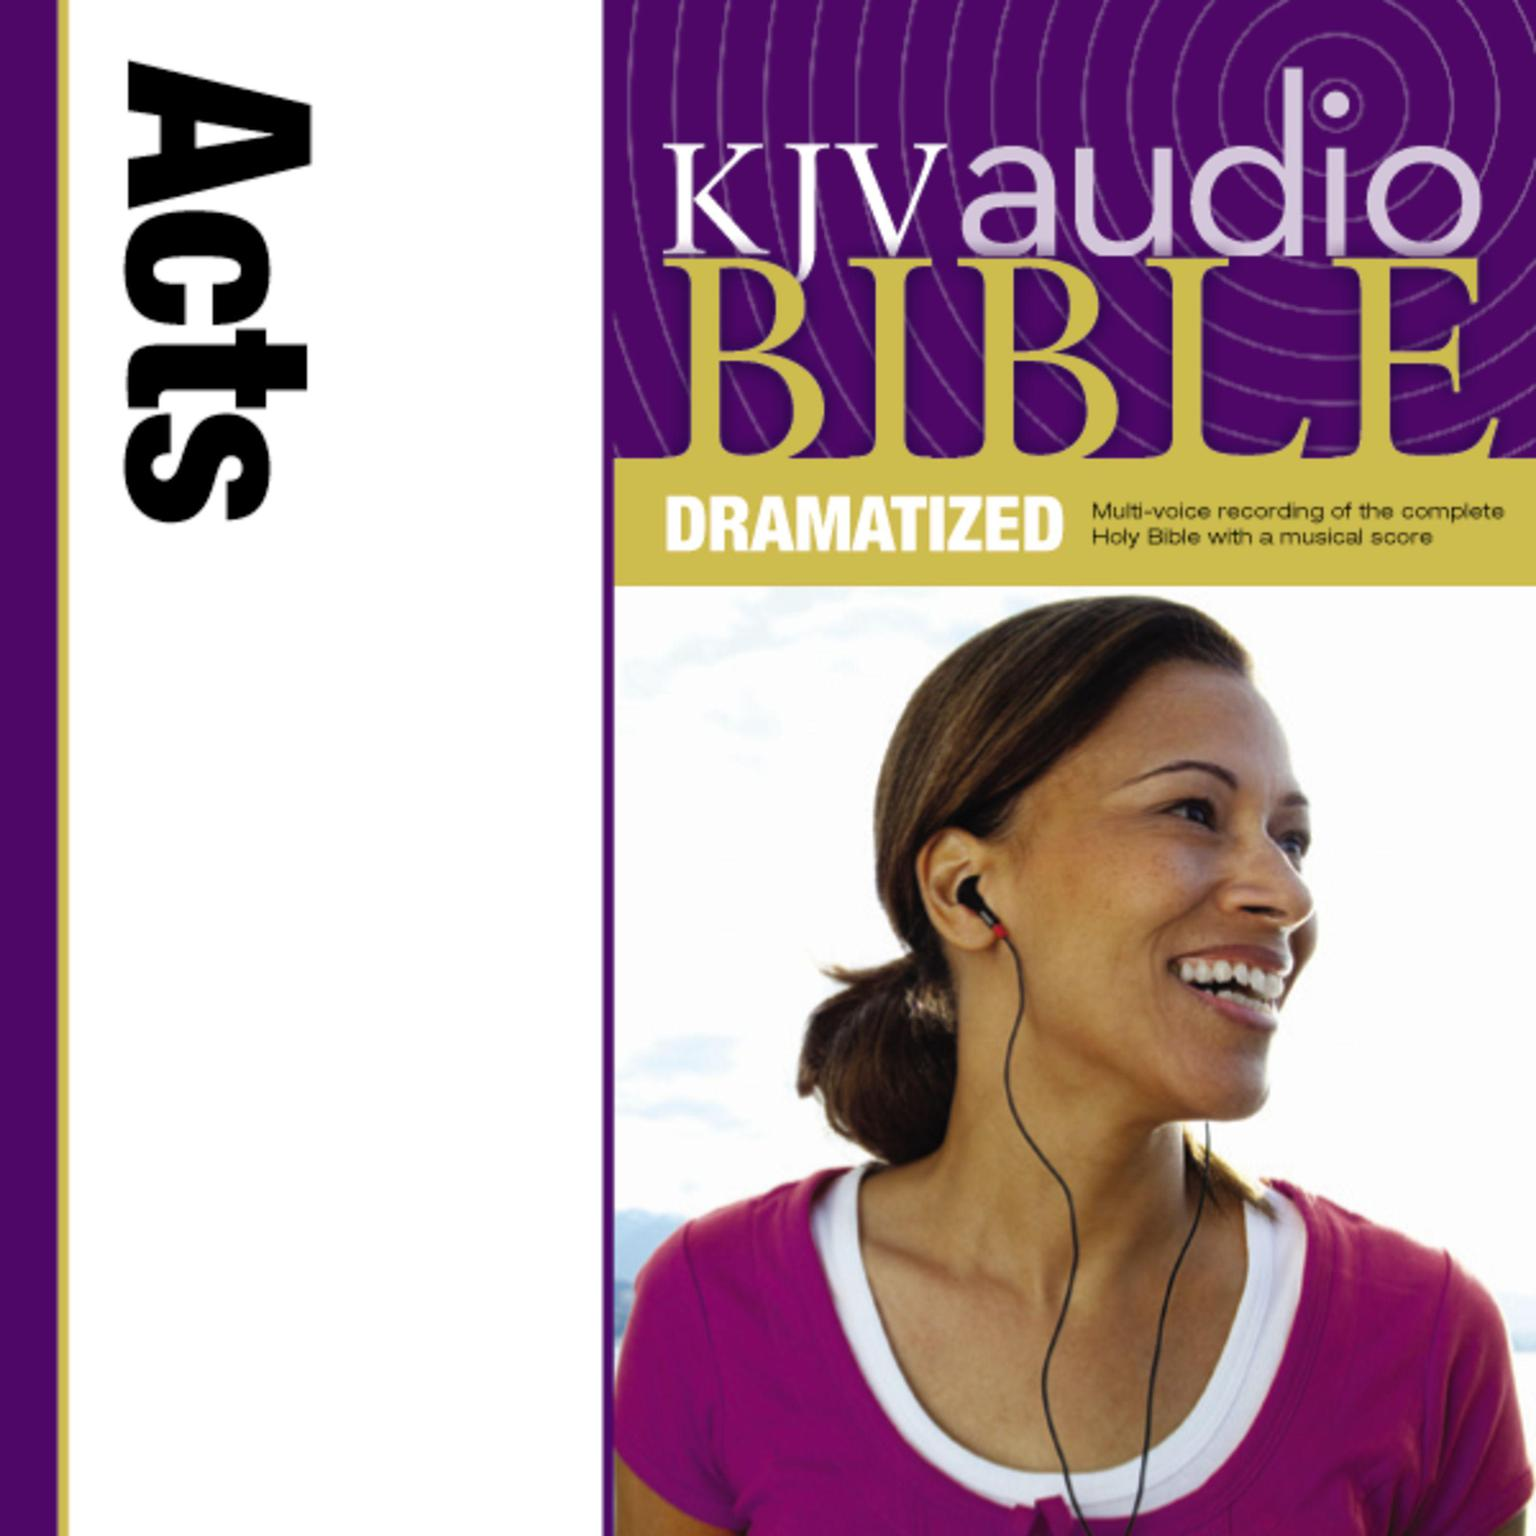 Printable KJV, Audio Bible, Dramatized: Acts, Audio Download Audiobook Cover Art